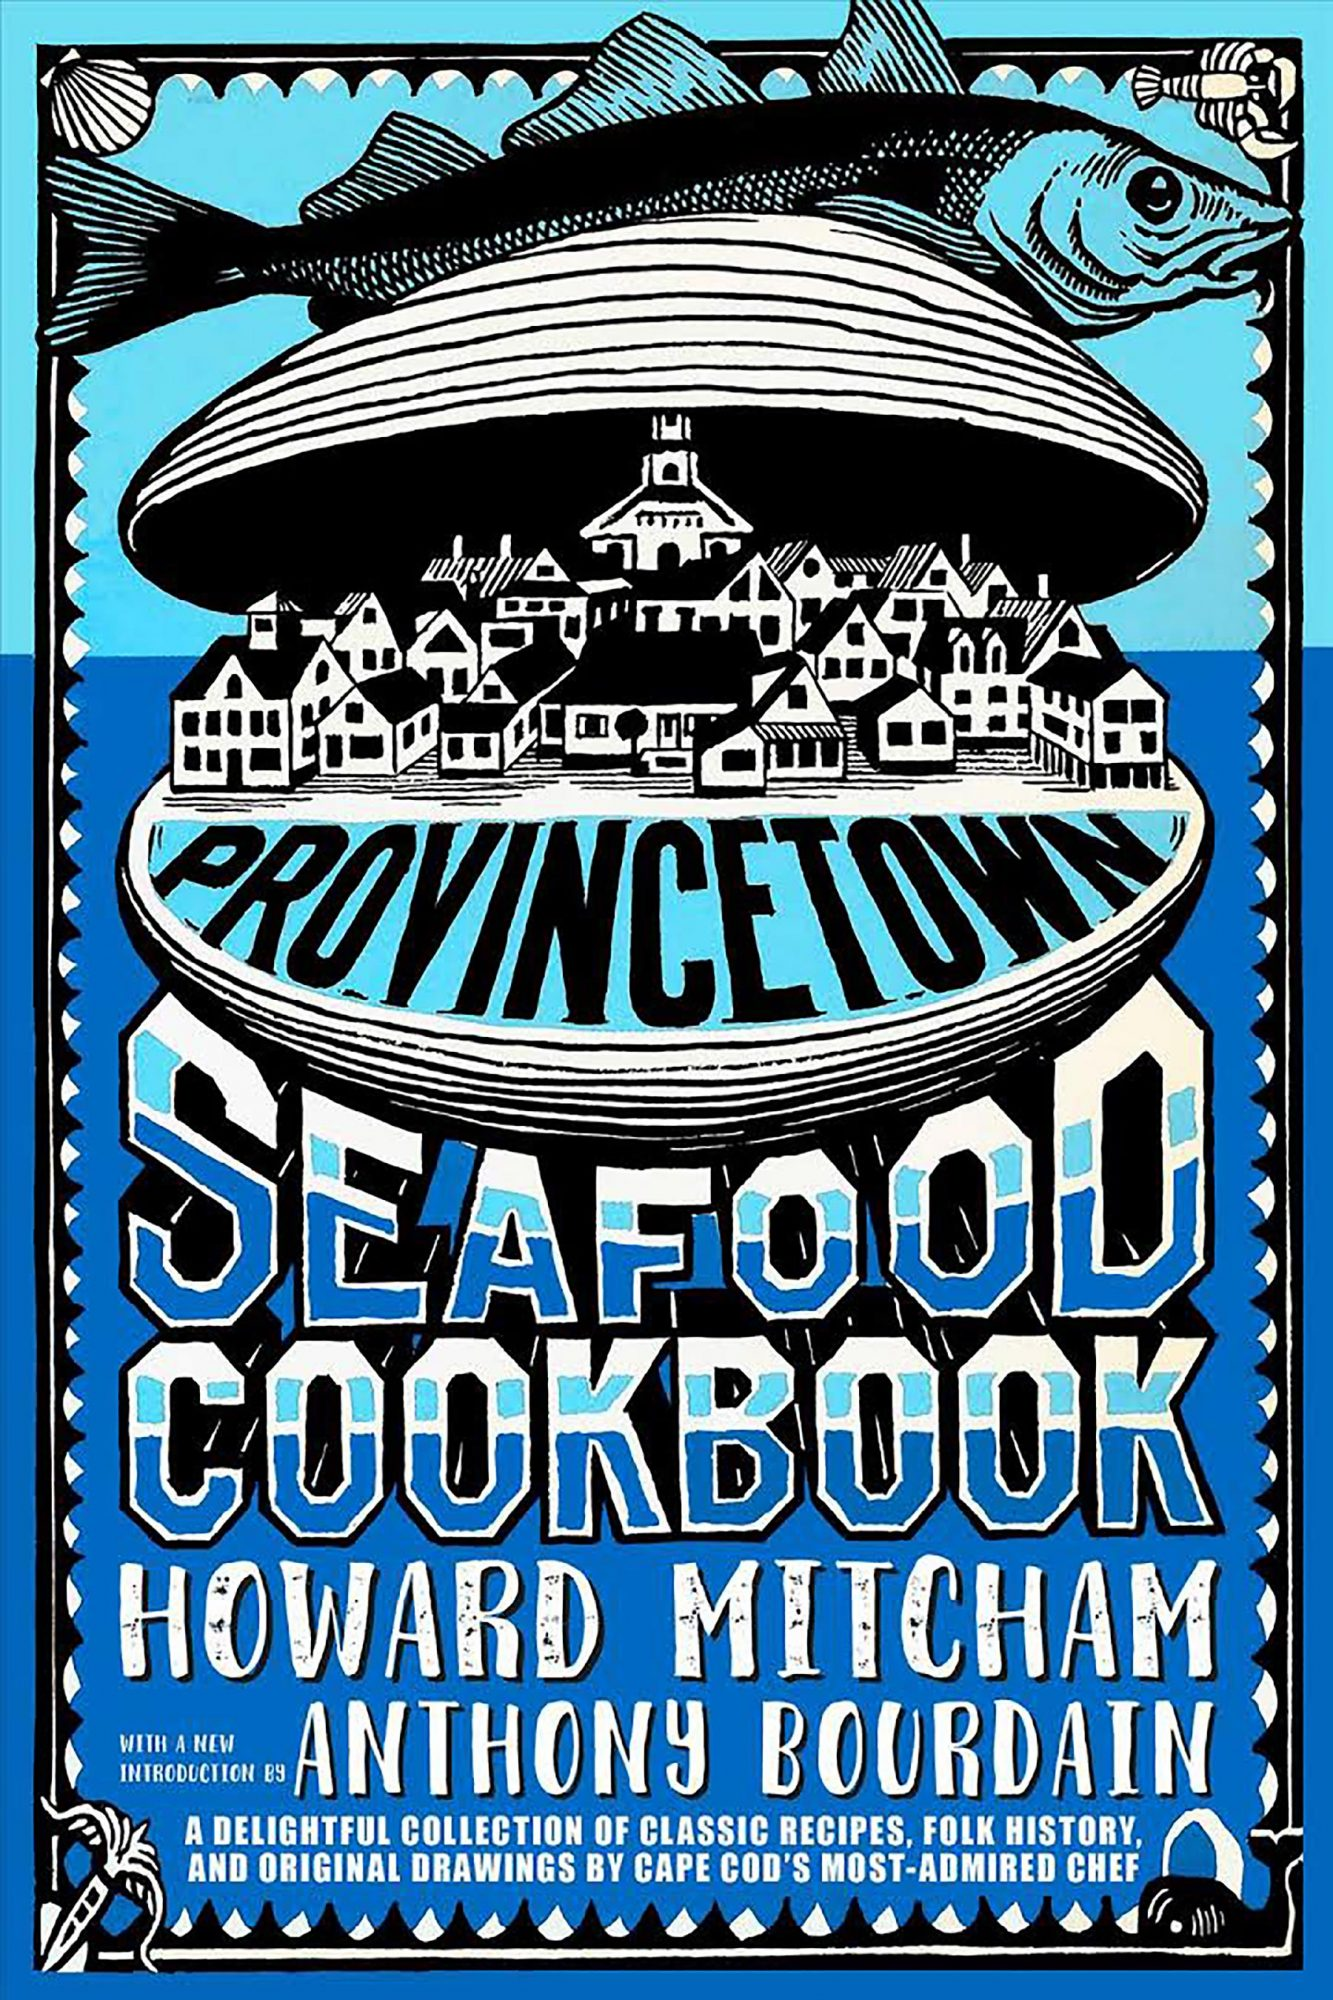 The Provincetown seafood cookbookBook by Howard Mitcham CR: Abe Books